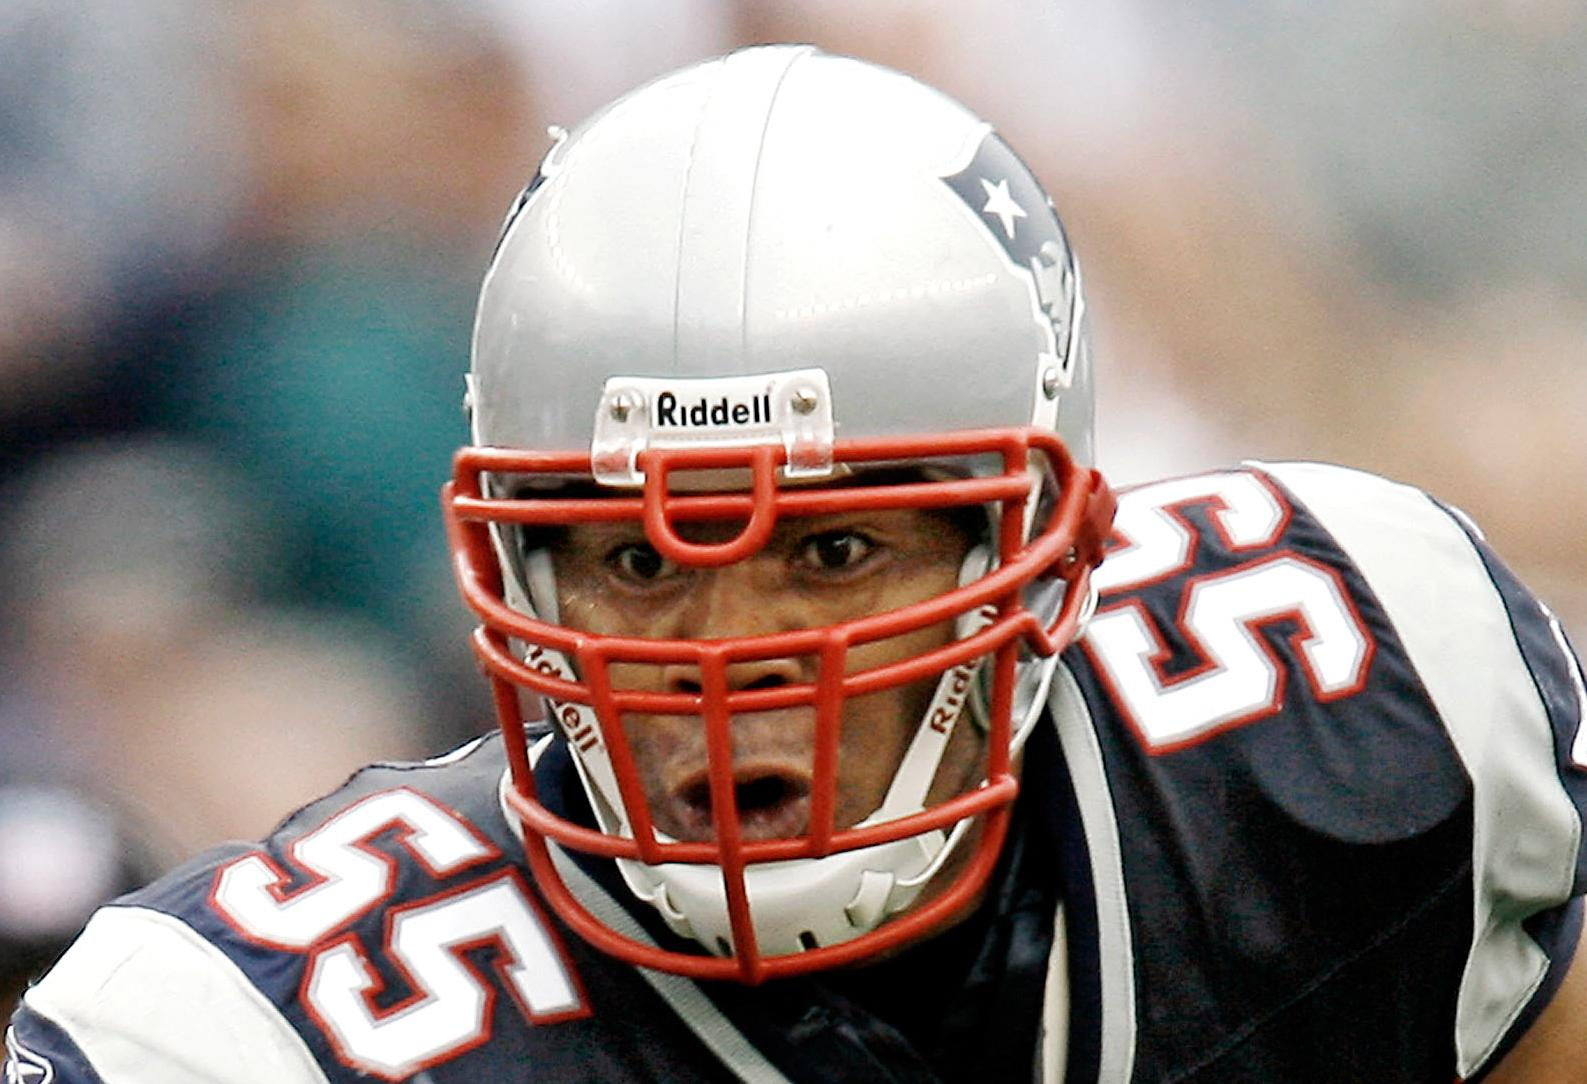 FILE - In this Oct. 7, 2007 file photo, New England Patriots linebacker Junior Seau runs with the ball after an interception during New England's 34-17 win over the Cleveland Browns in a football game at Gillette Stadium in Foxborough, Mass. Senior U.S. District Judge Anita Brody in Philadelphia, announced Thursday, Aug. 29, 2013, that the NFL and more than 4,500 former players want to settle concussion-related lawsuits for $765 million. The plaintiffs include at least 10 members of the Pro Football Hall of Fame, along with and the family of Seau, who committed suicide last year. The global settlement would fund medical exams, concussion-related compensation and medical research. (AP Photo/Winslow Townson, File)